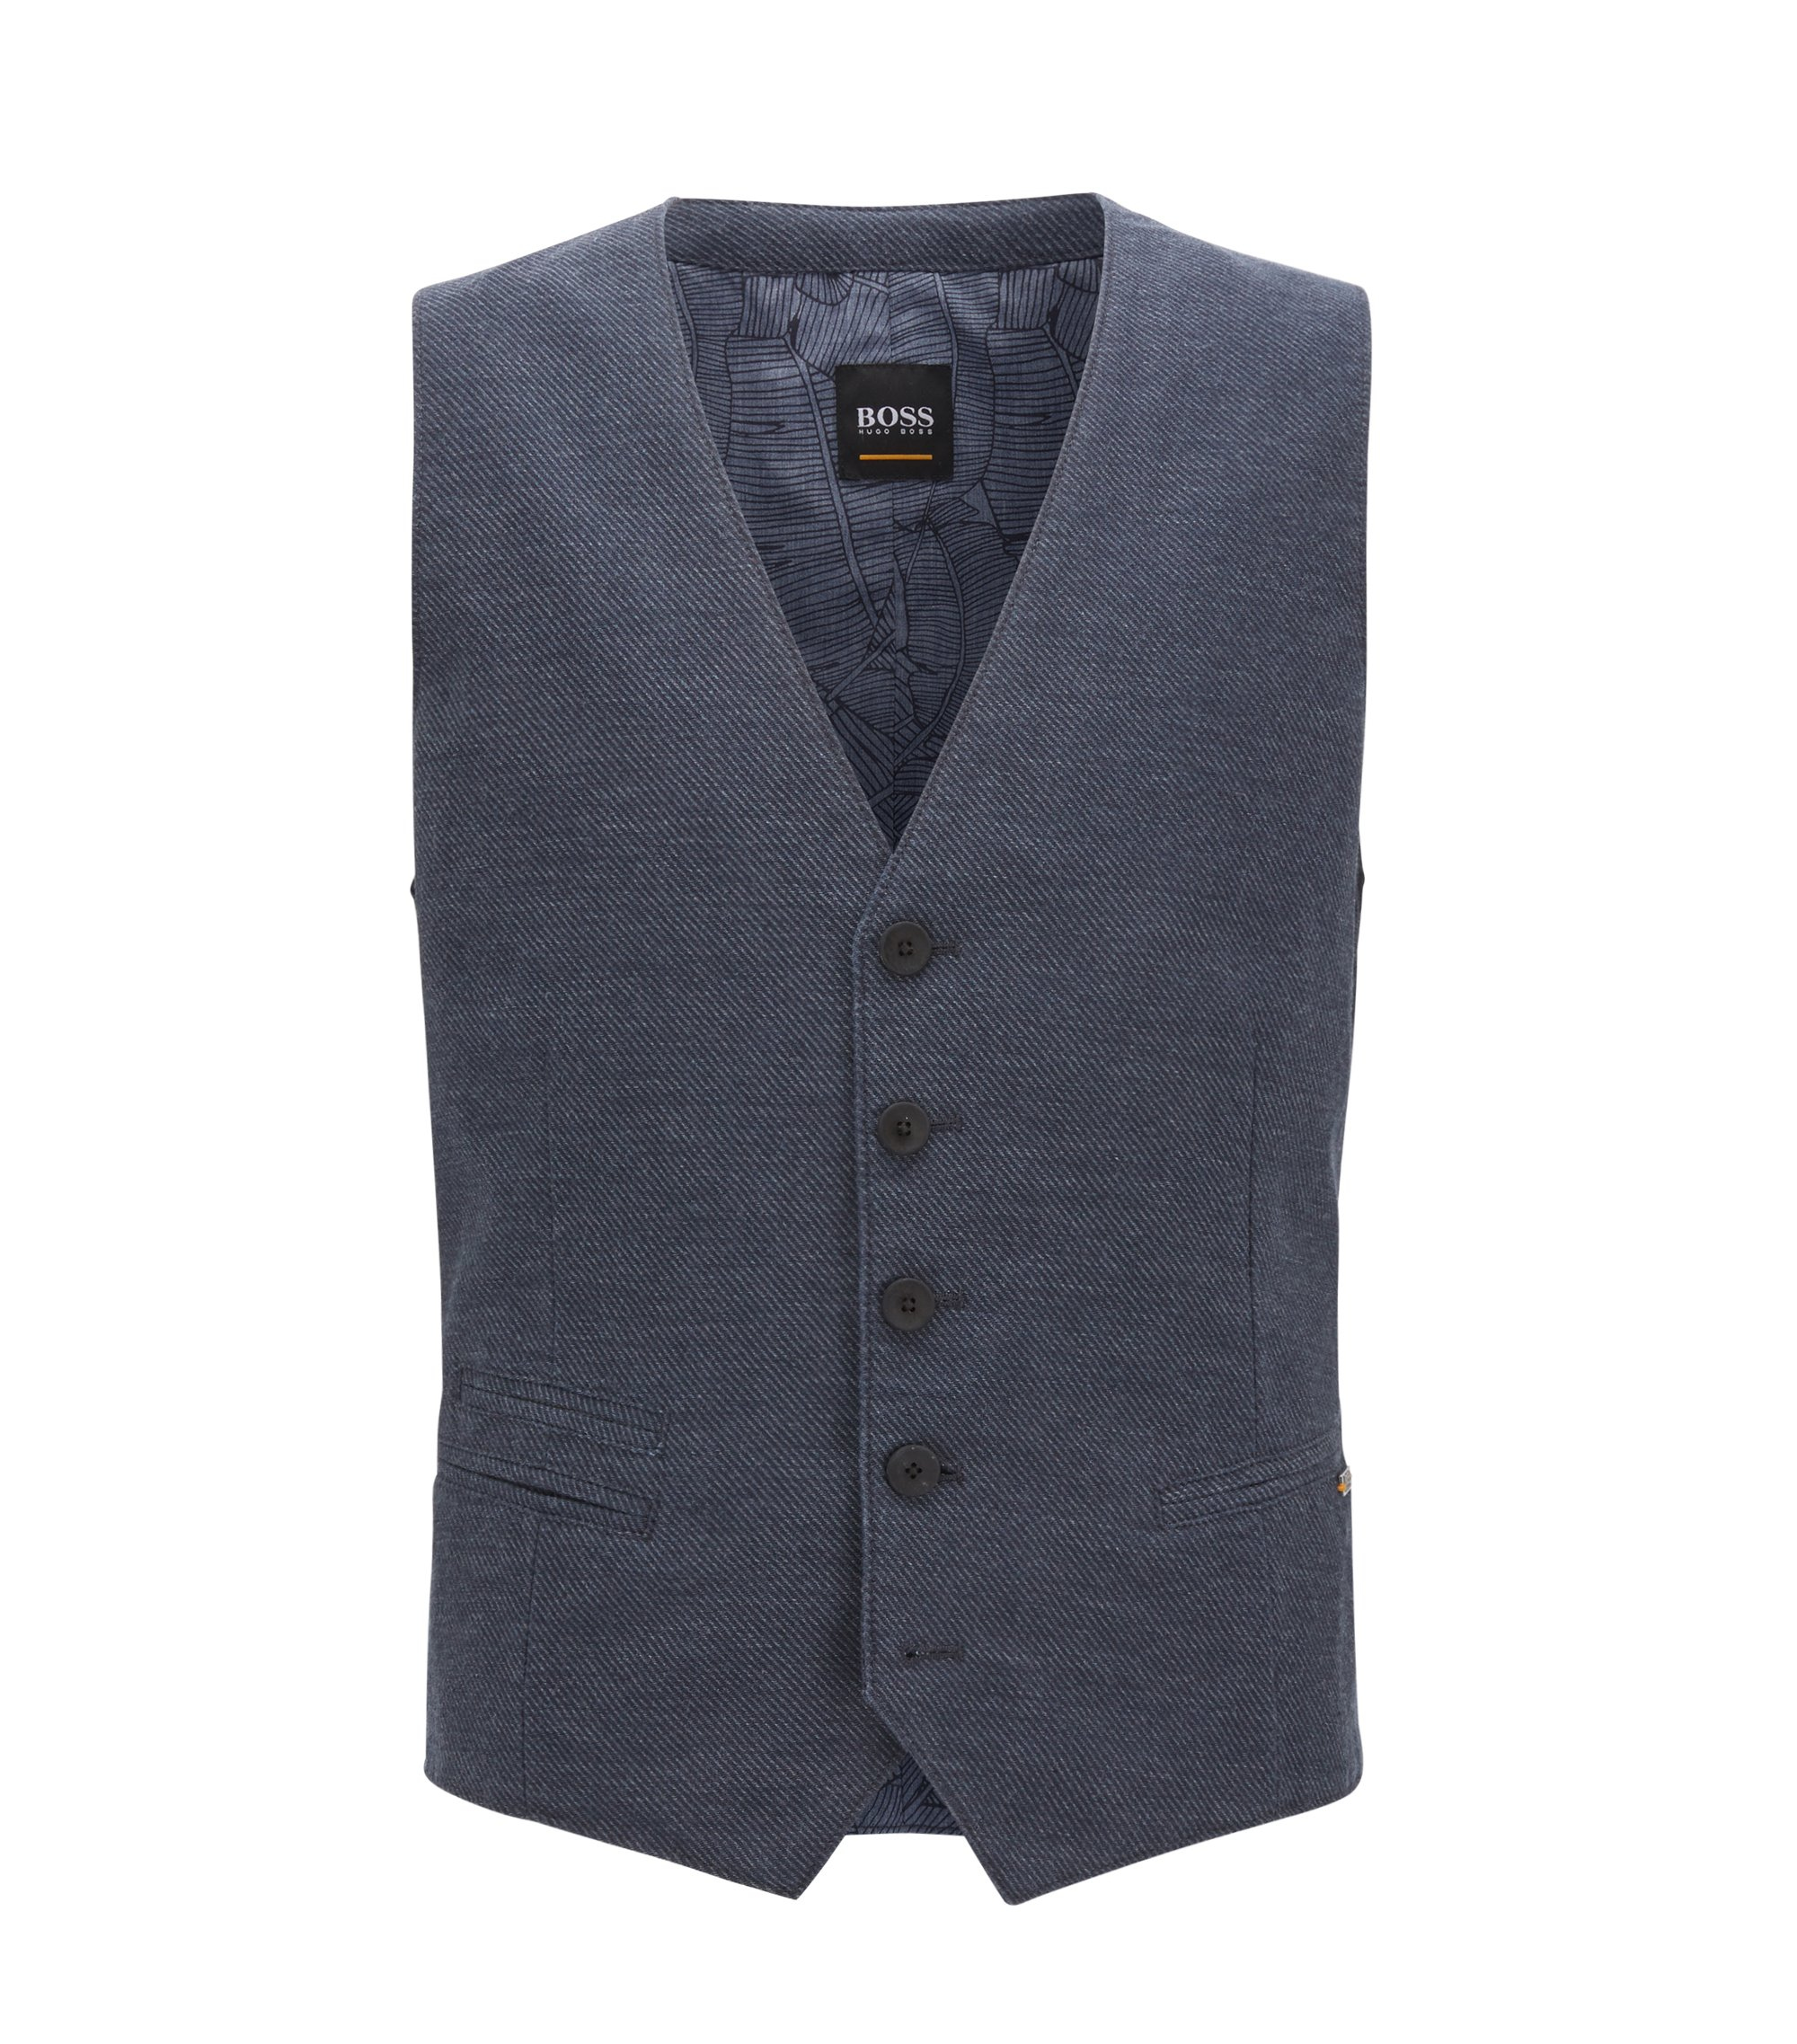 Cotton Linen Blend Waistcoat, Slim Fit | Baster BS W, Dark Blue